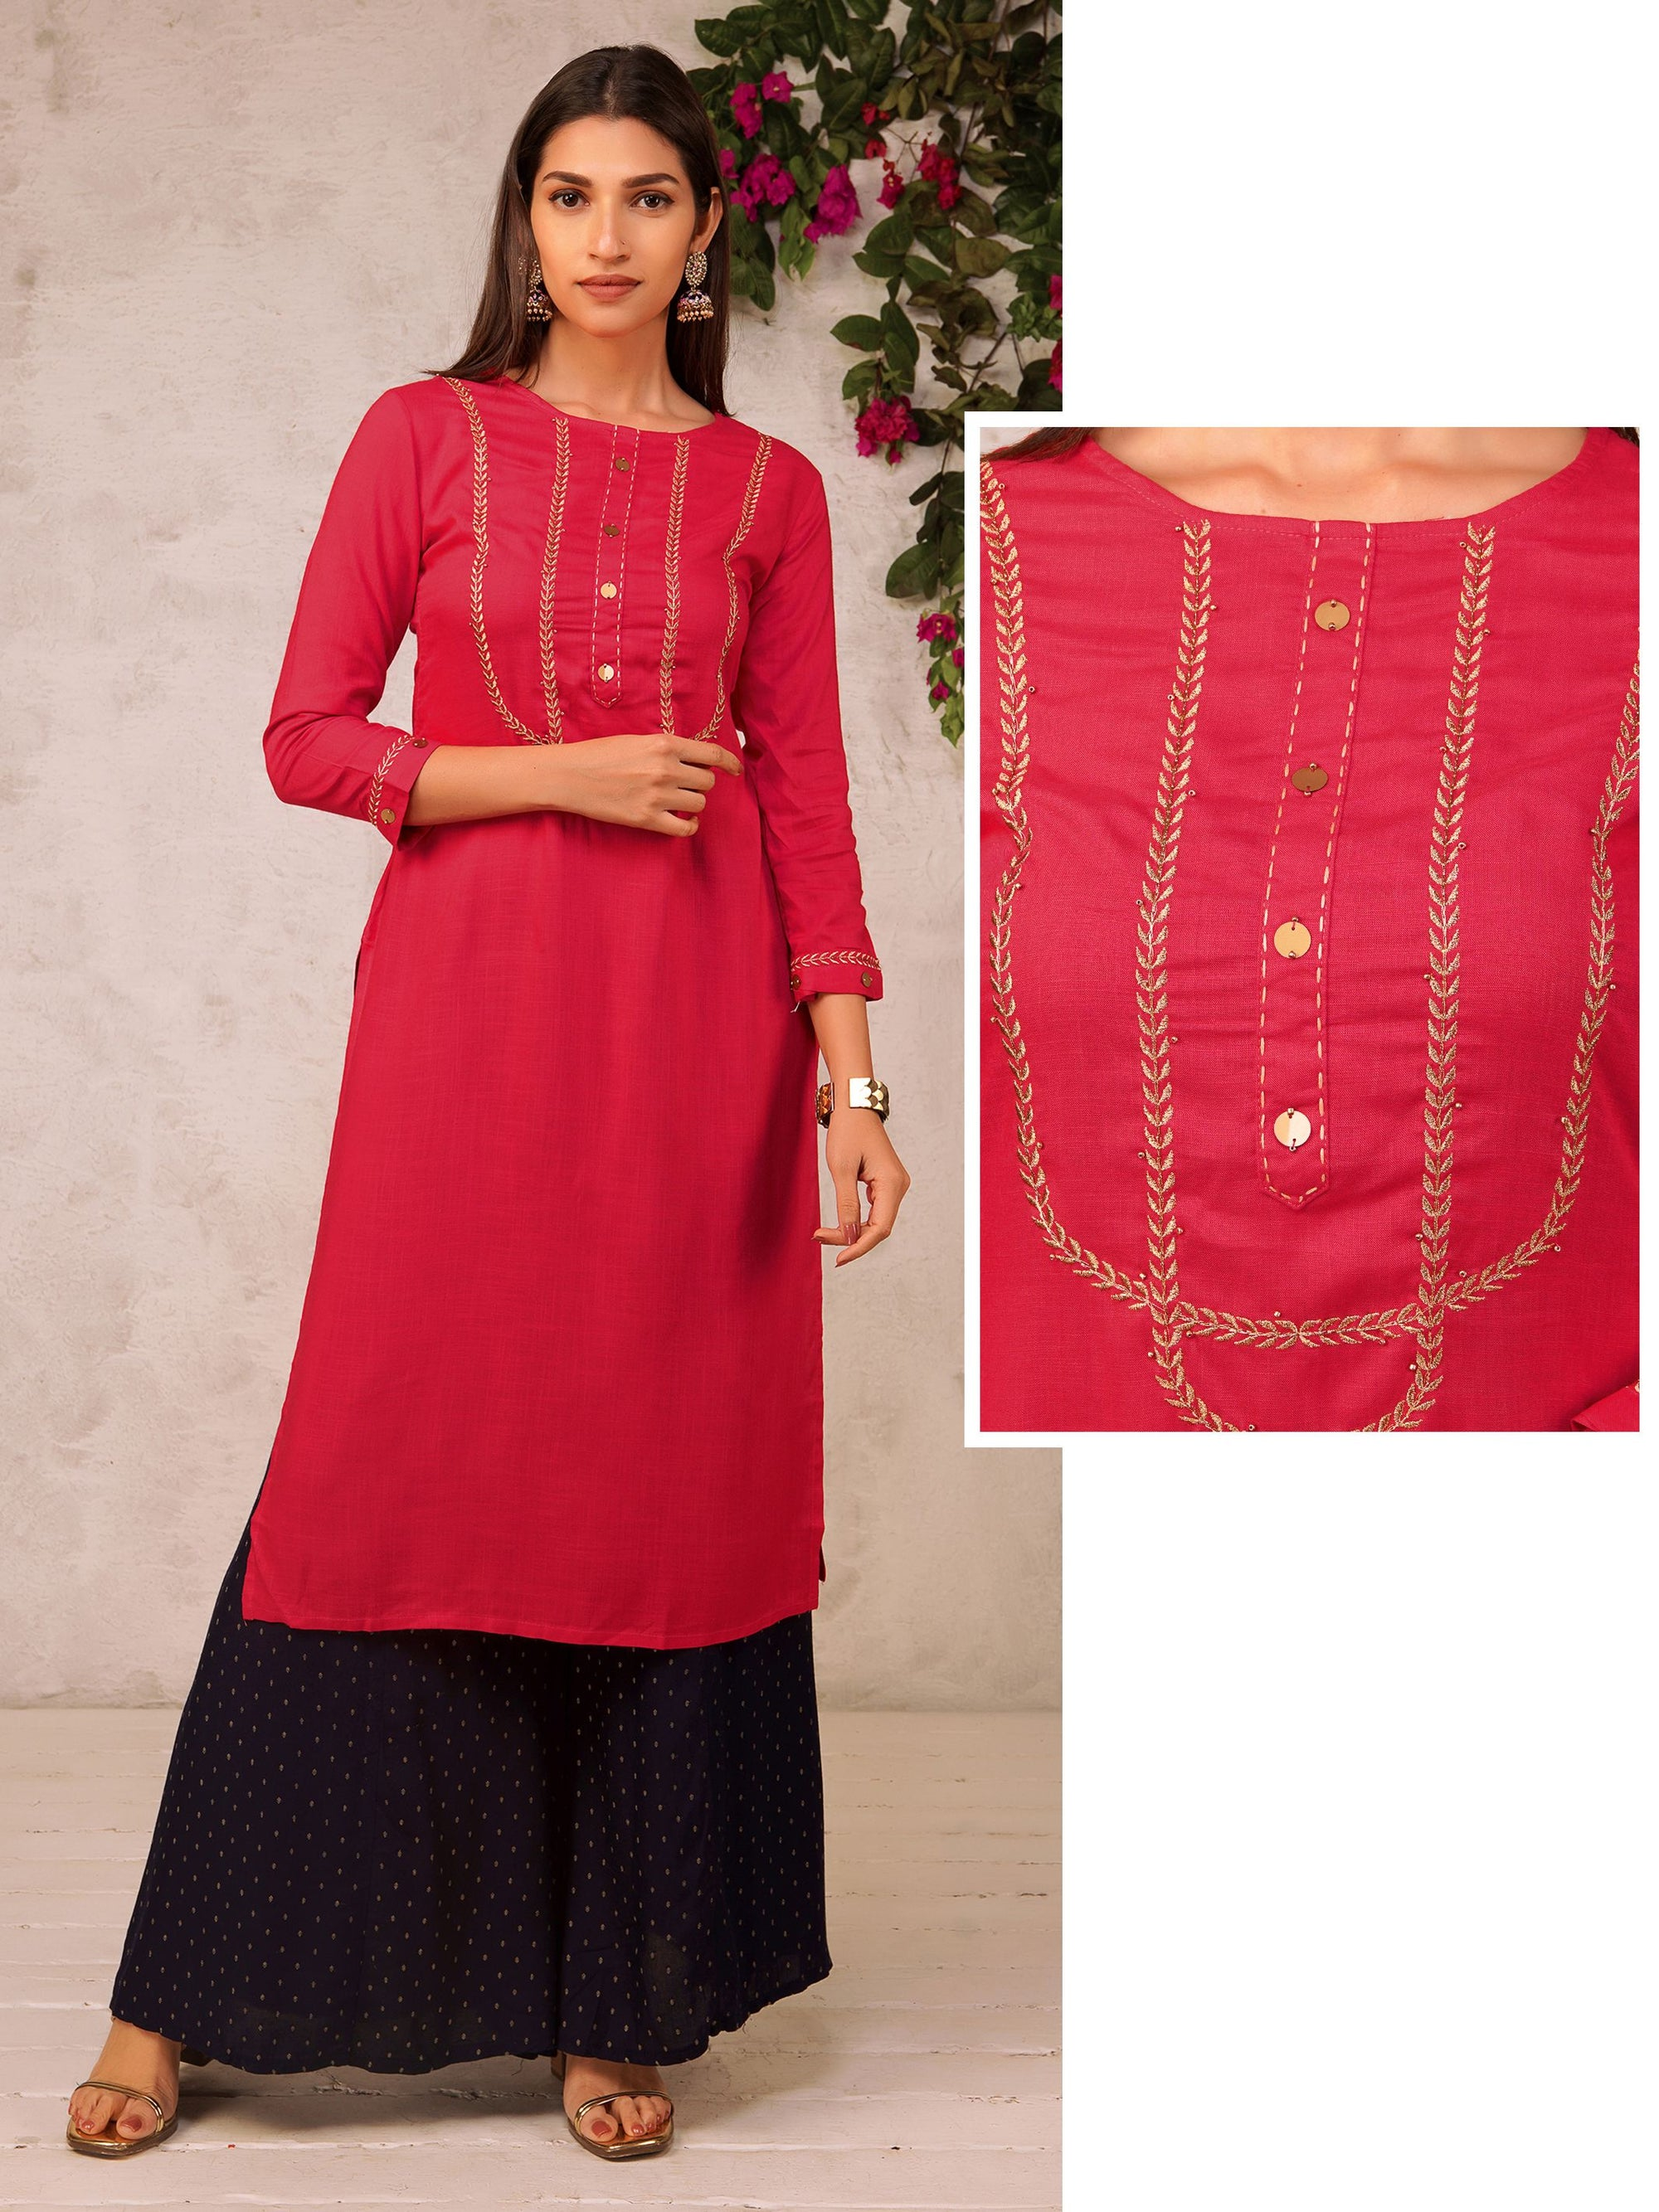 Golden Leaf Embroidered Kurta With Sequins Button – Pink